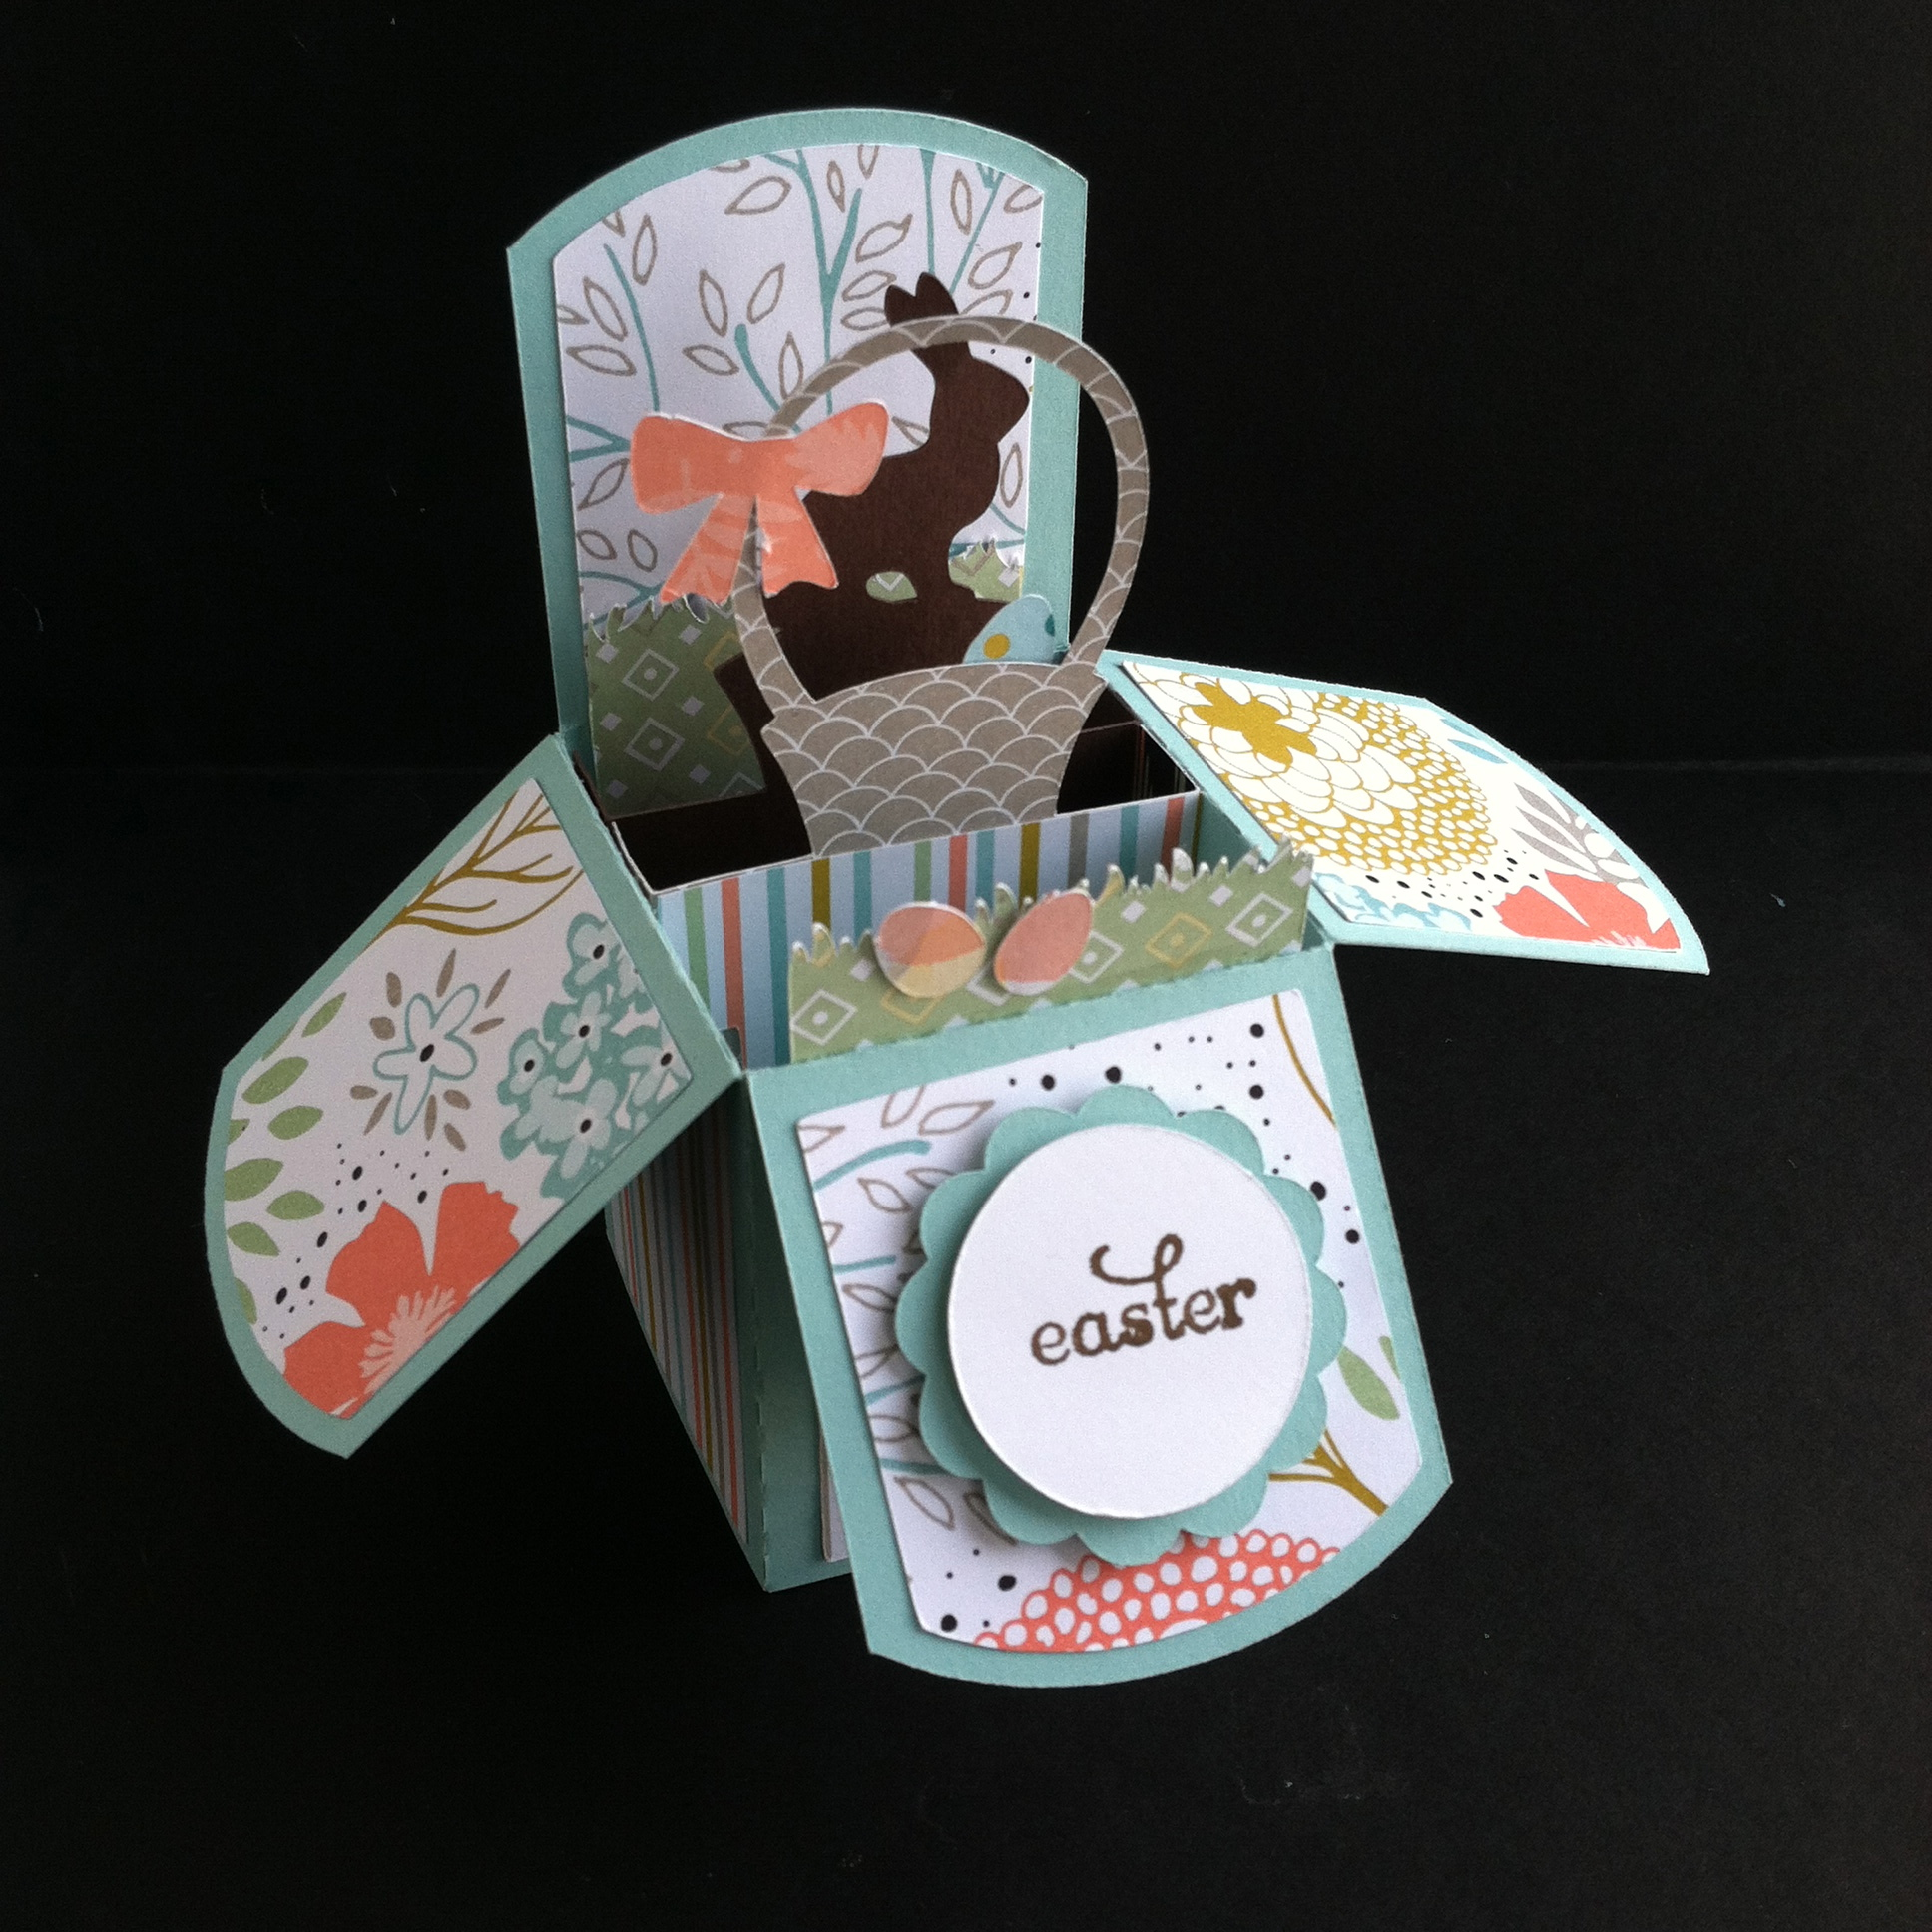 Easter pop-up box card, Stampin' Up! Sweet Sorbet, Lori Whitlock, Silhouette